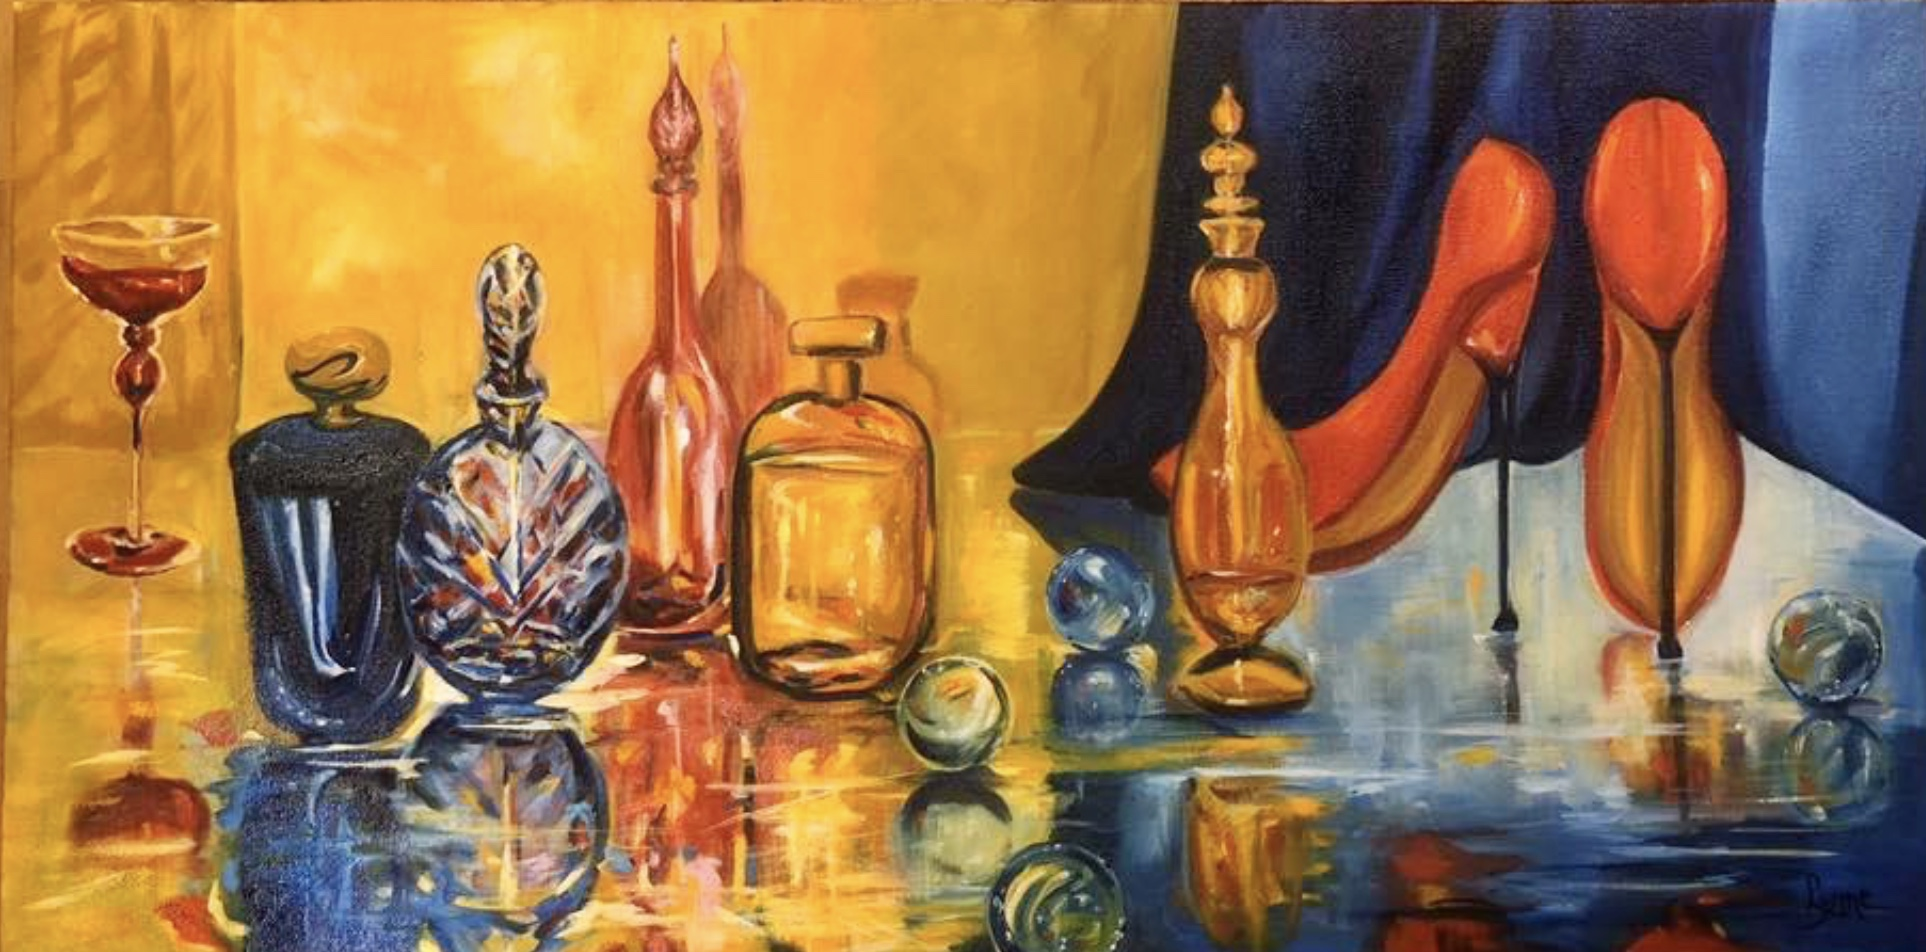 Painting of perfume bottles reflecting in a mirrored table by Lynne Rempel.